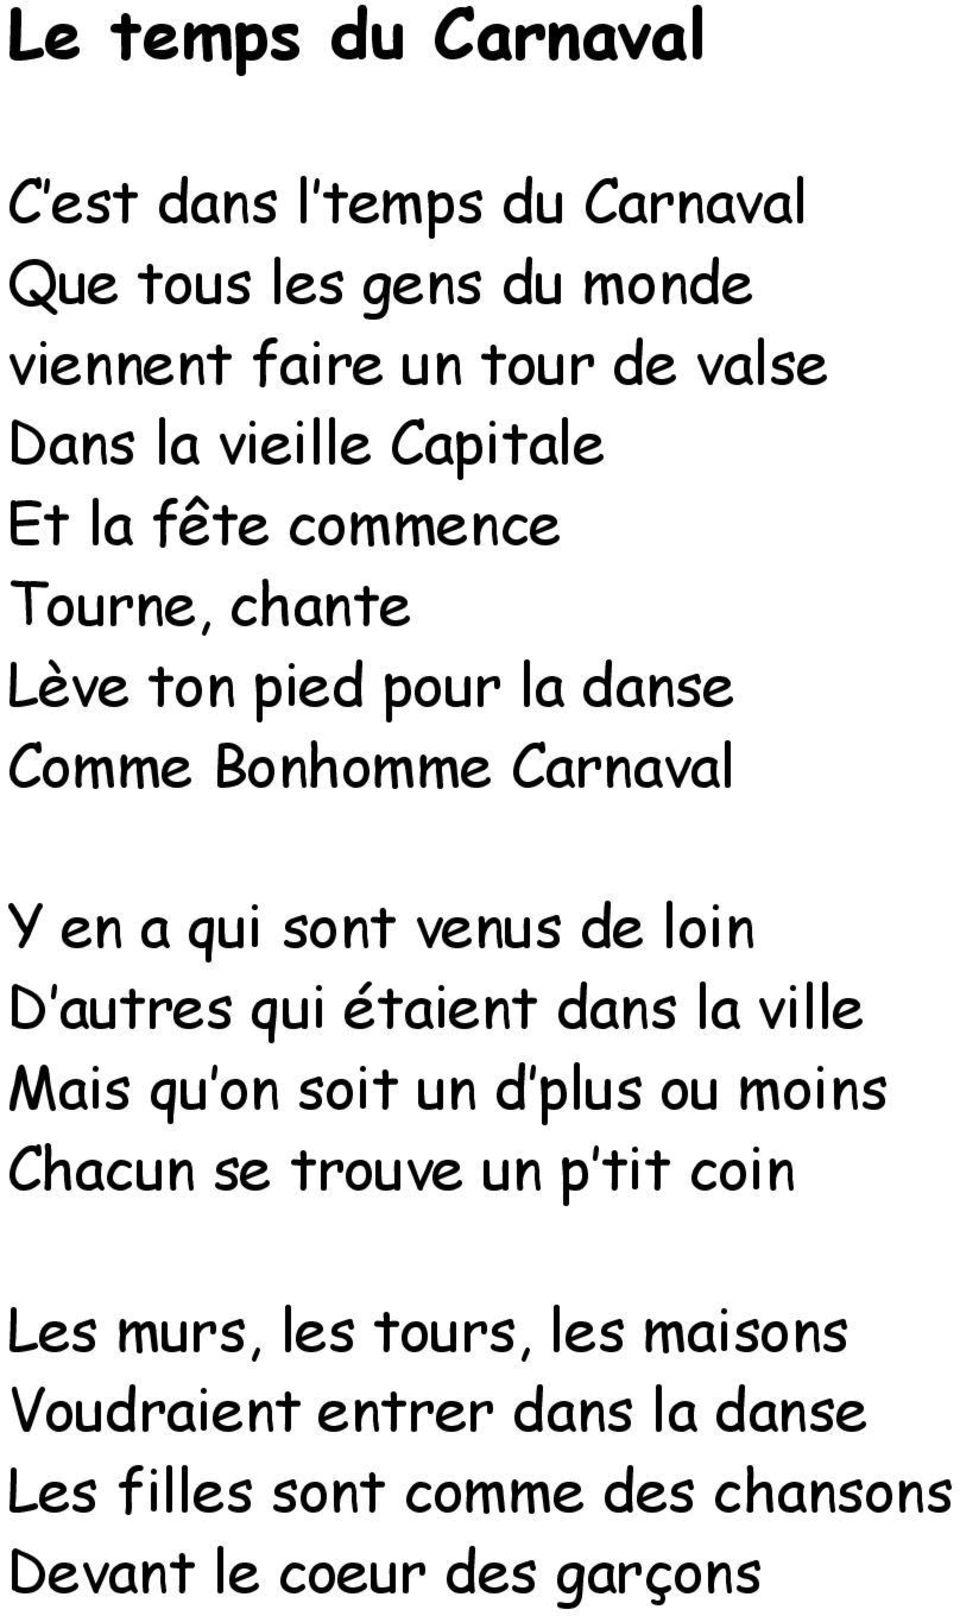 chanson guillaume le méchant homme paroles